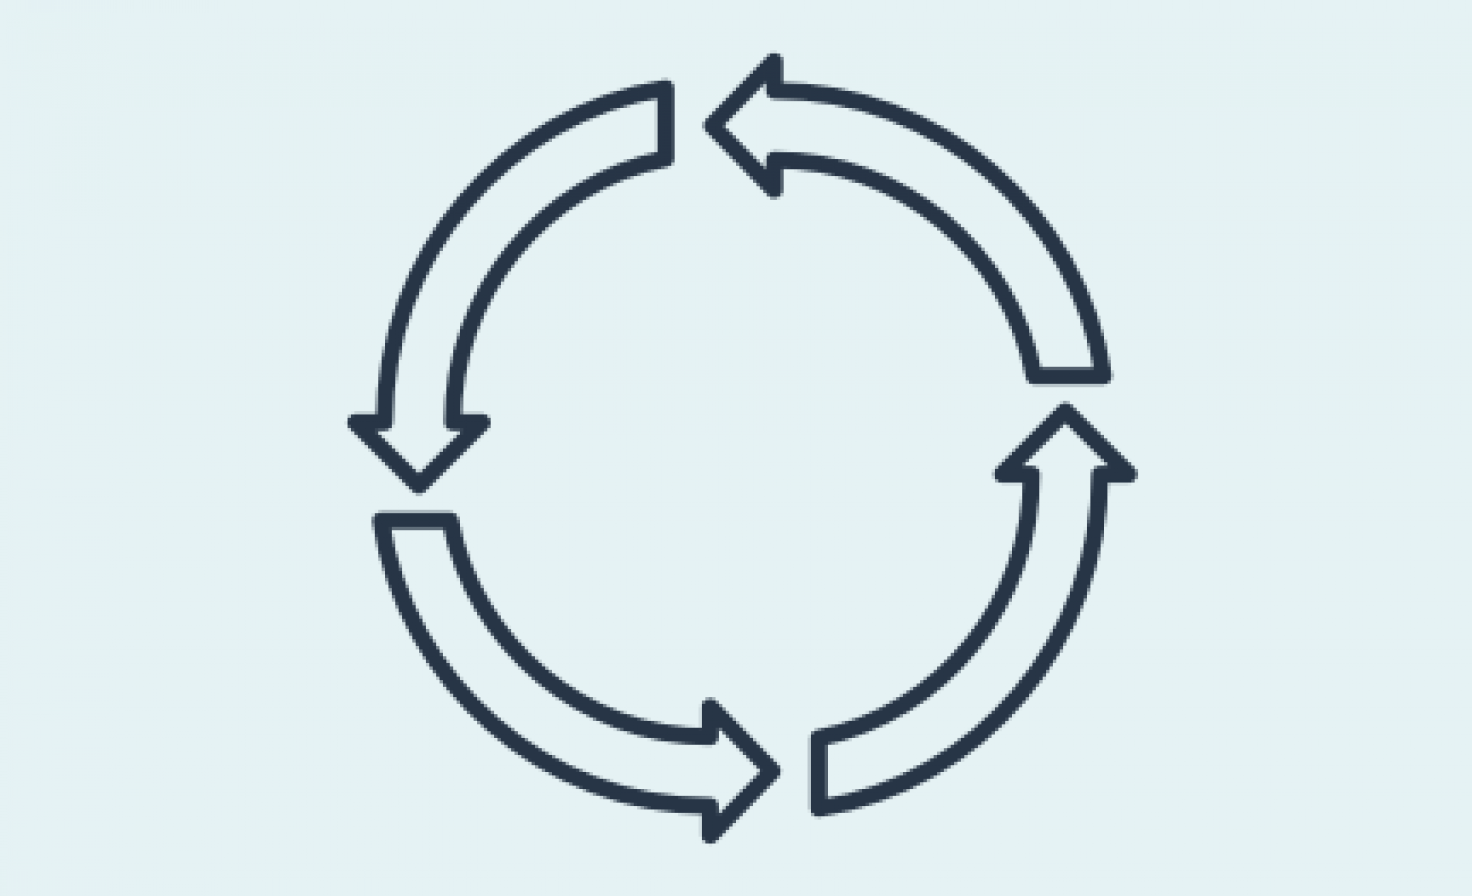 Diagram with arrows pointing in a circle